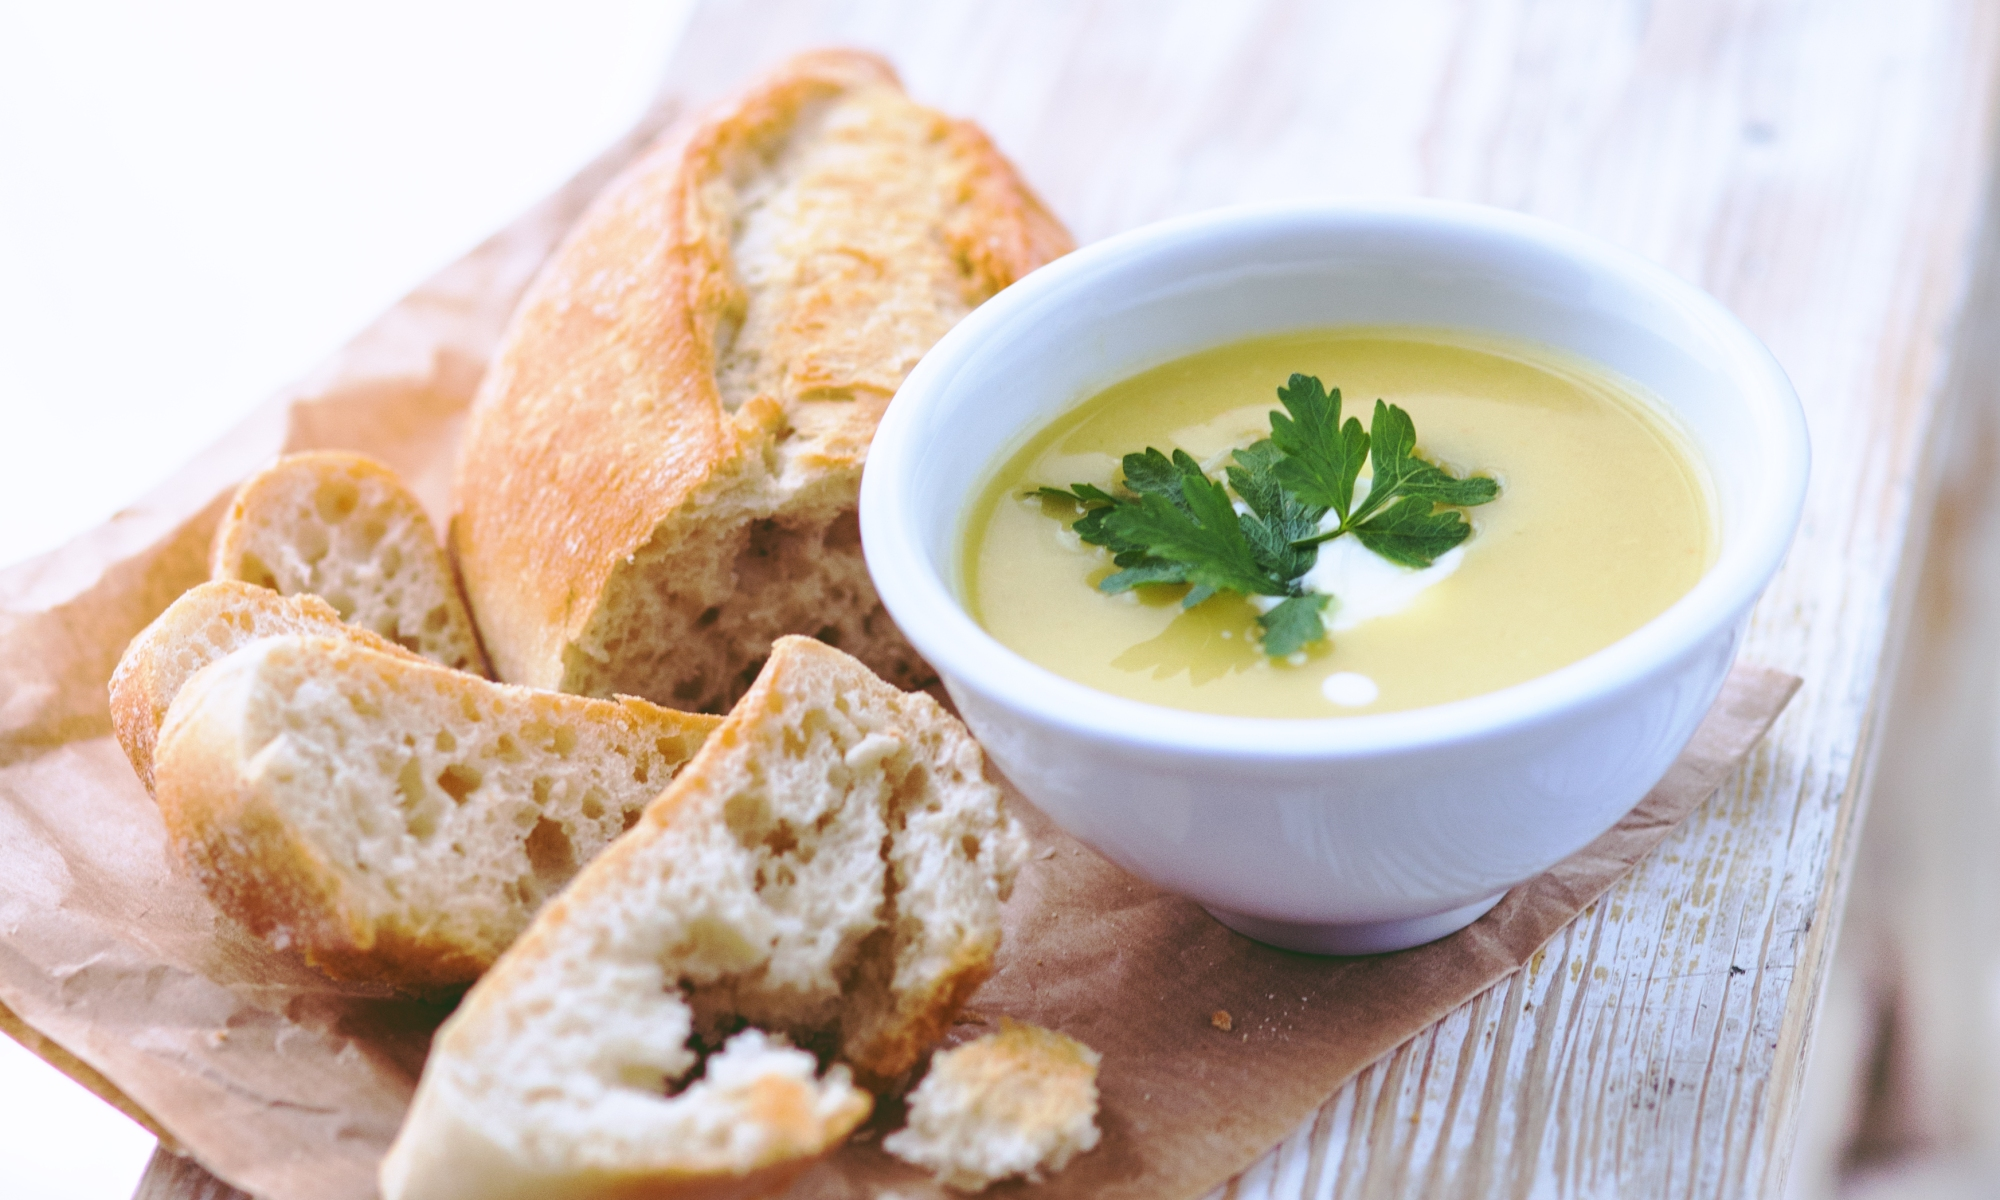 Recipe: Leek and Potato Soup with Gluten Free Bread